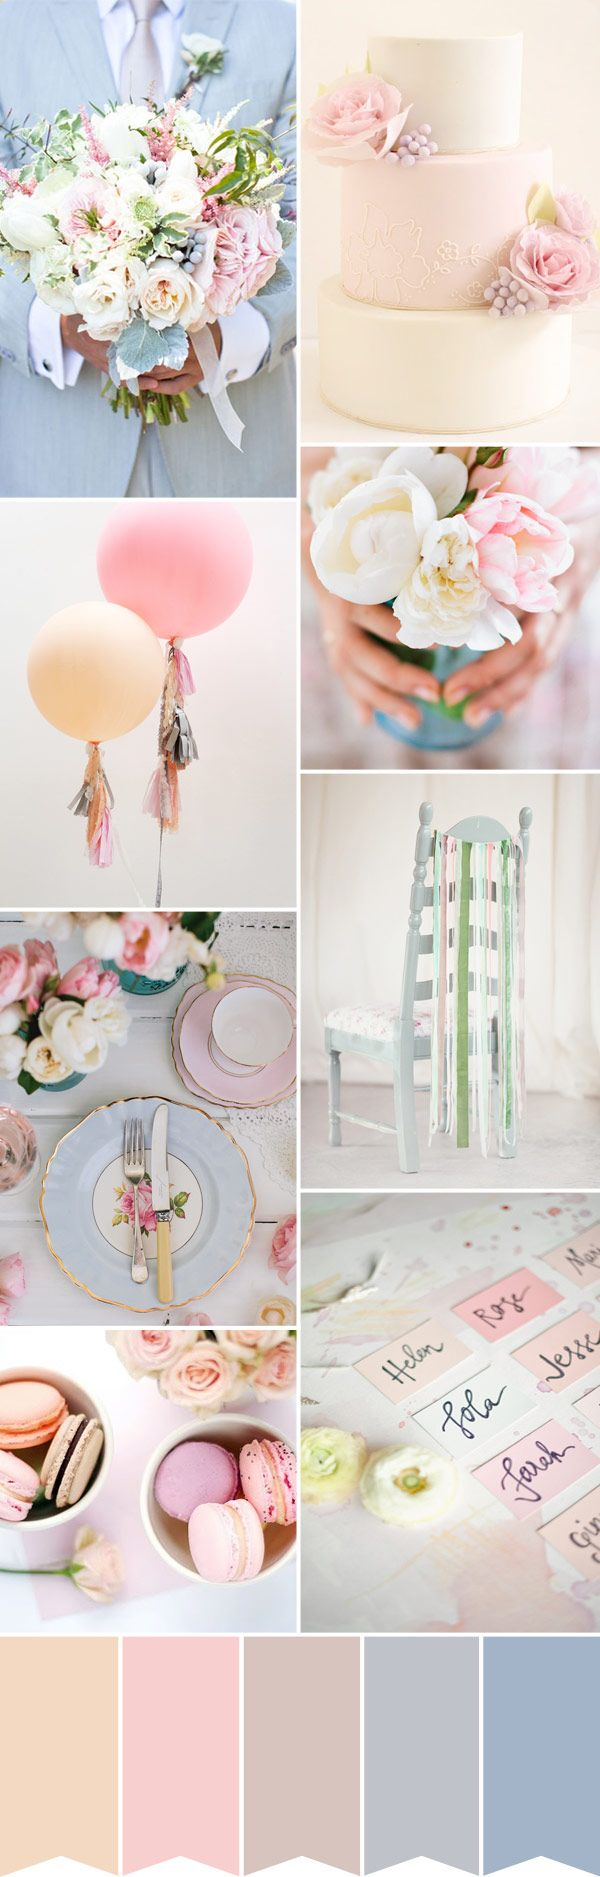 But my heart lies with pastels, vintage, pretty china, flowers and anything girly or shabby chic